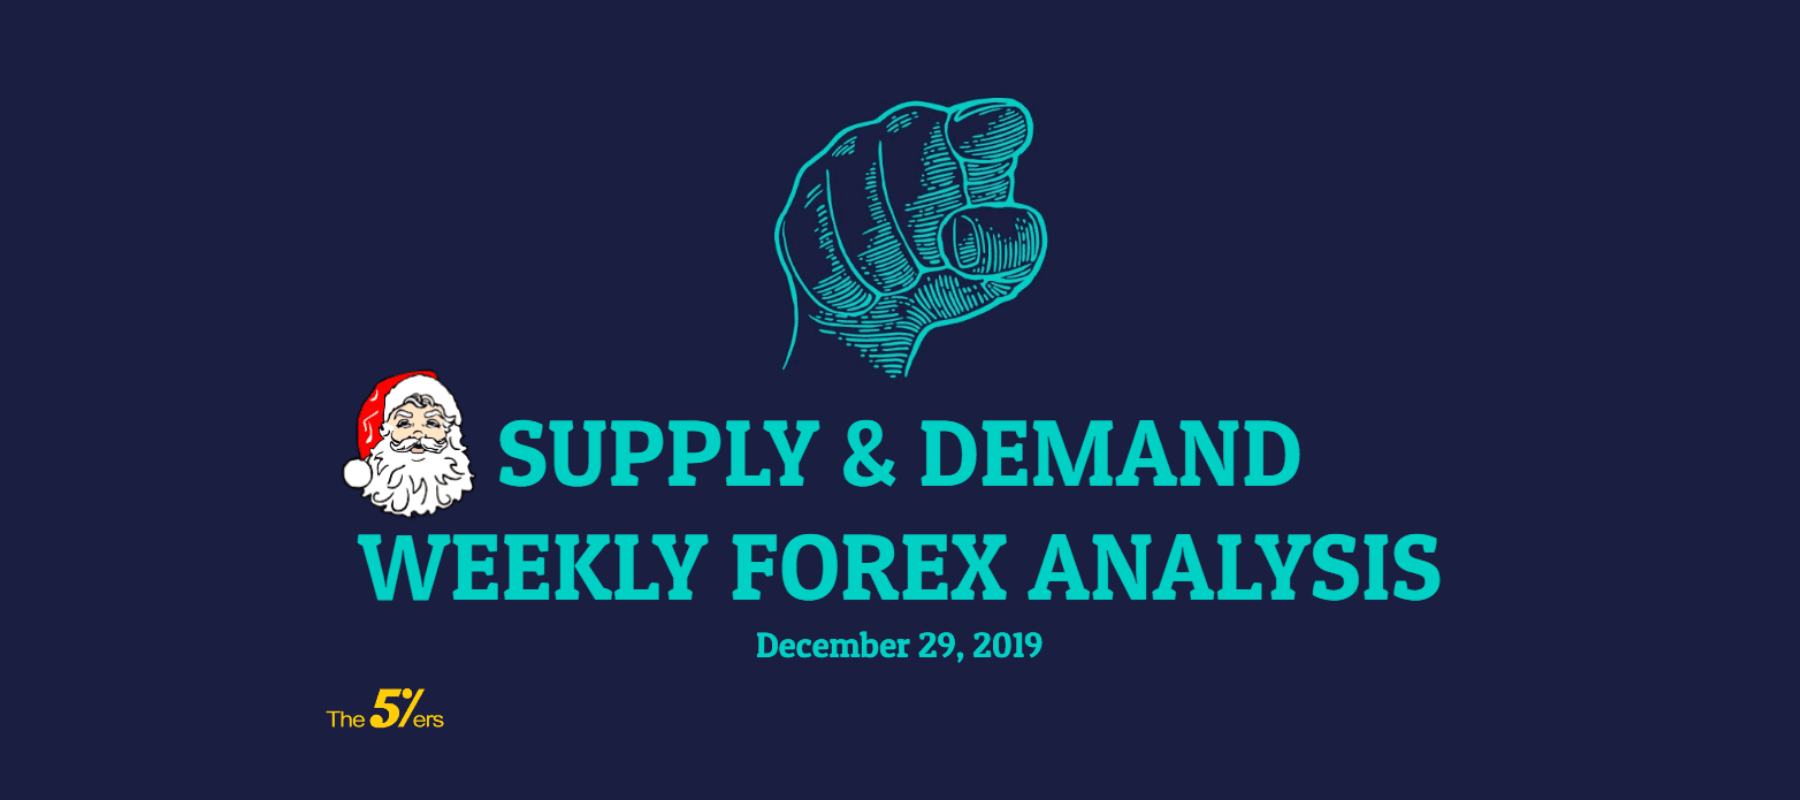 SUPPLY & DEMAND WEEKLY FOREX ANALYSIS on December 29, 2019